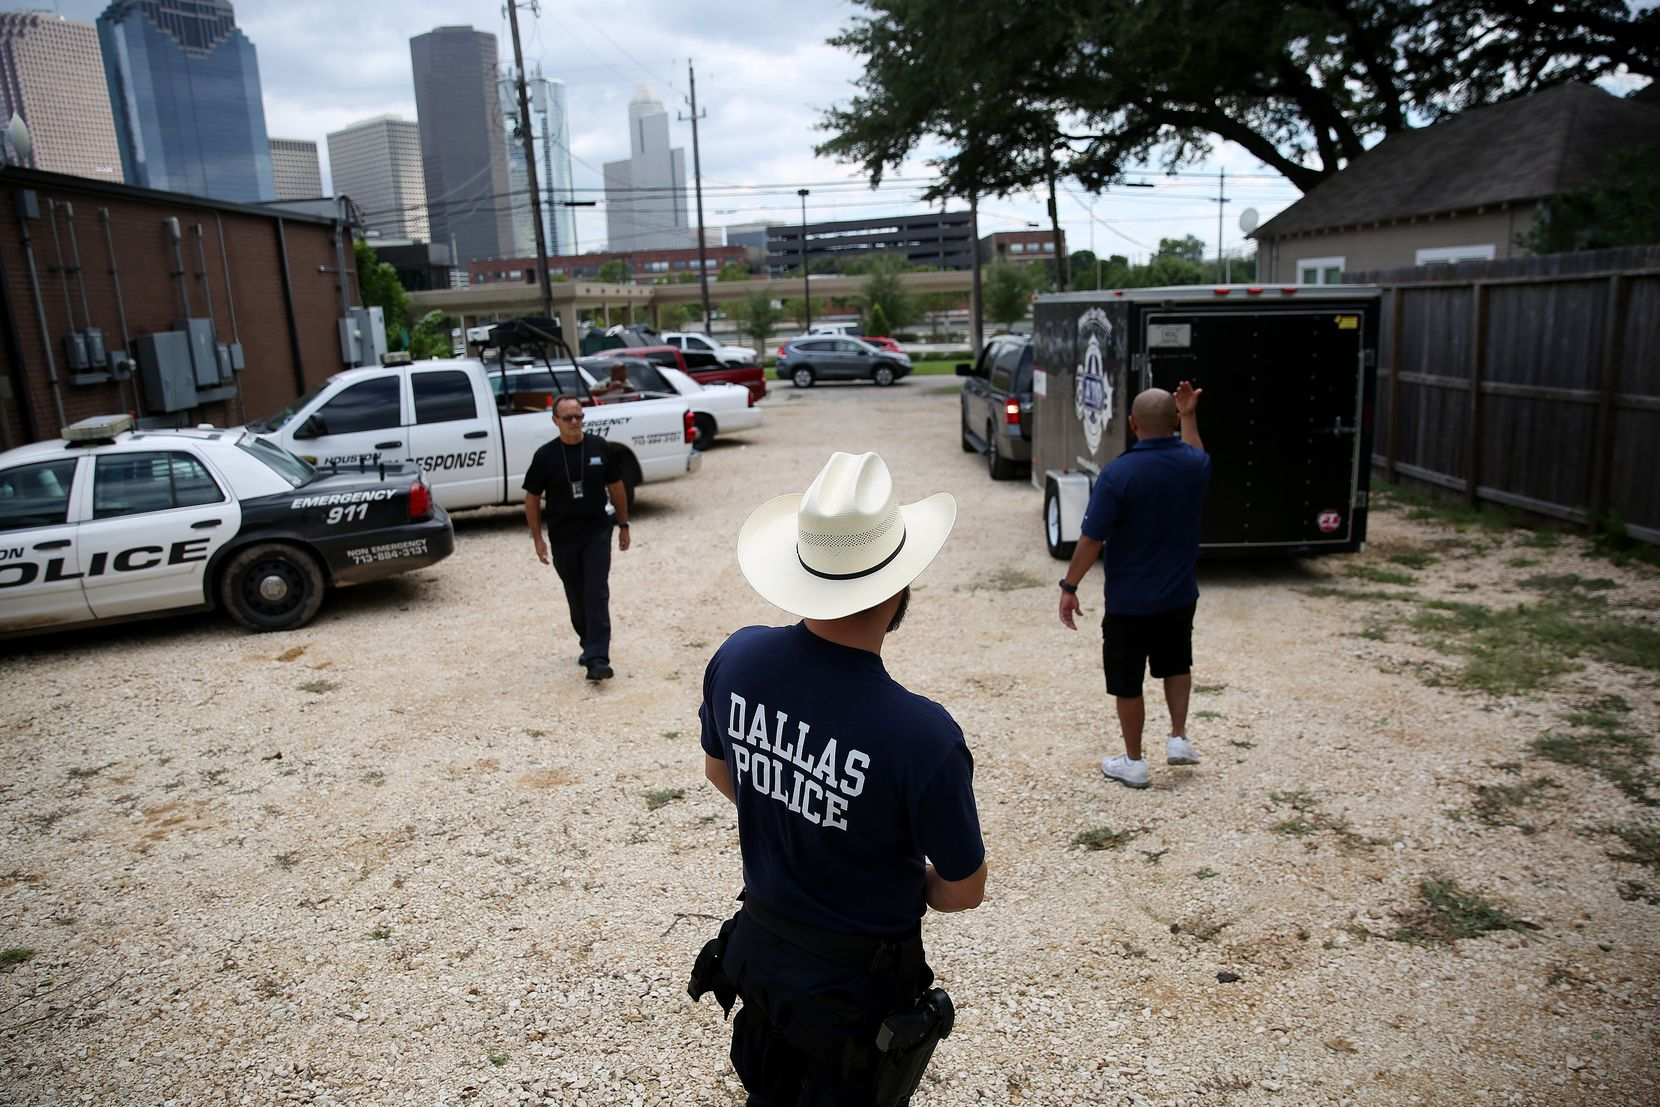 A Dallas police officer waits while a truck is backed in as members of the Dallas Police Association donate relief items collected for the Houston Police Department are dropped off at the Houston Police Officers' Union in Houston Wednesday August 30, 2017. The Dallas Police Association organized donations in assistance to police officers that are working following the devastation cause by Hurricane Harvey.